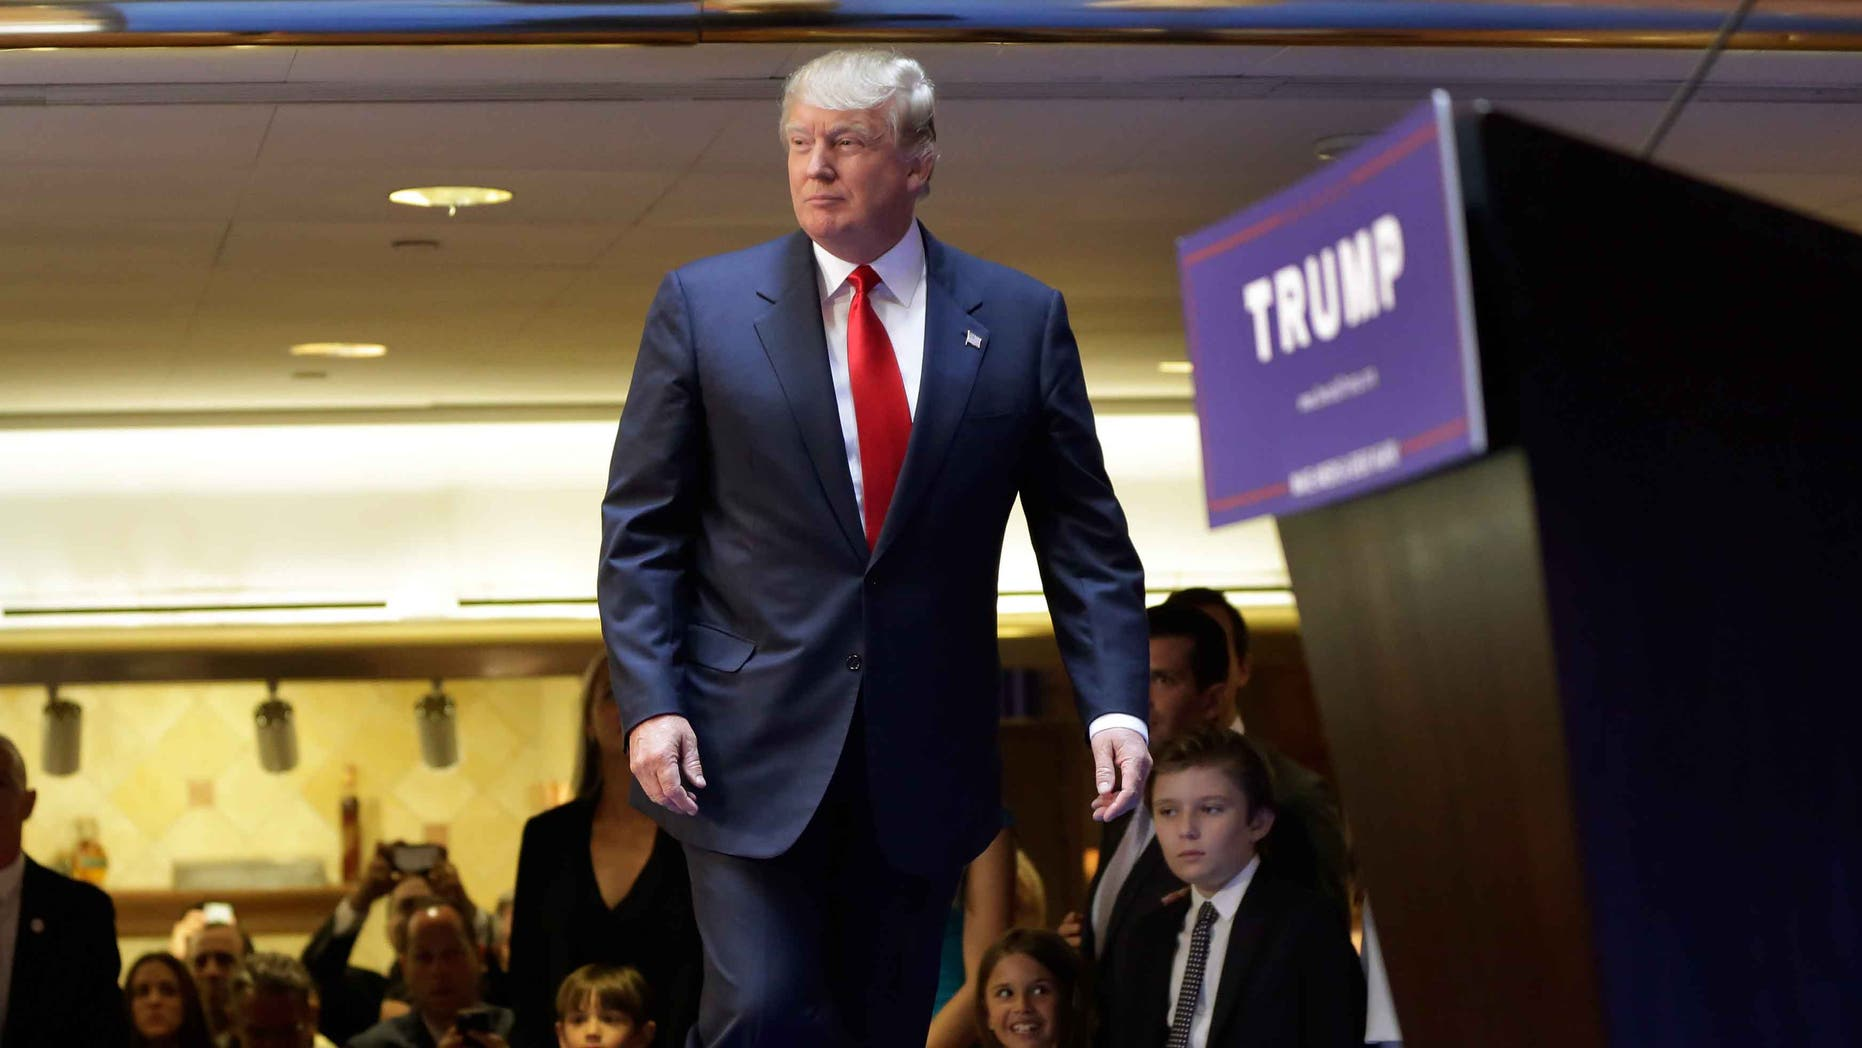 Donald Trump takes the stage to announce that he will seek the Republican nomination for president, Tuesday, June 16, 2015.